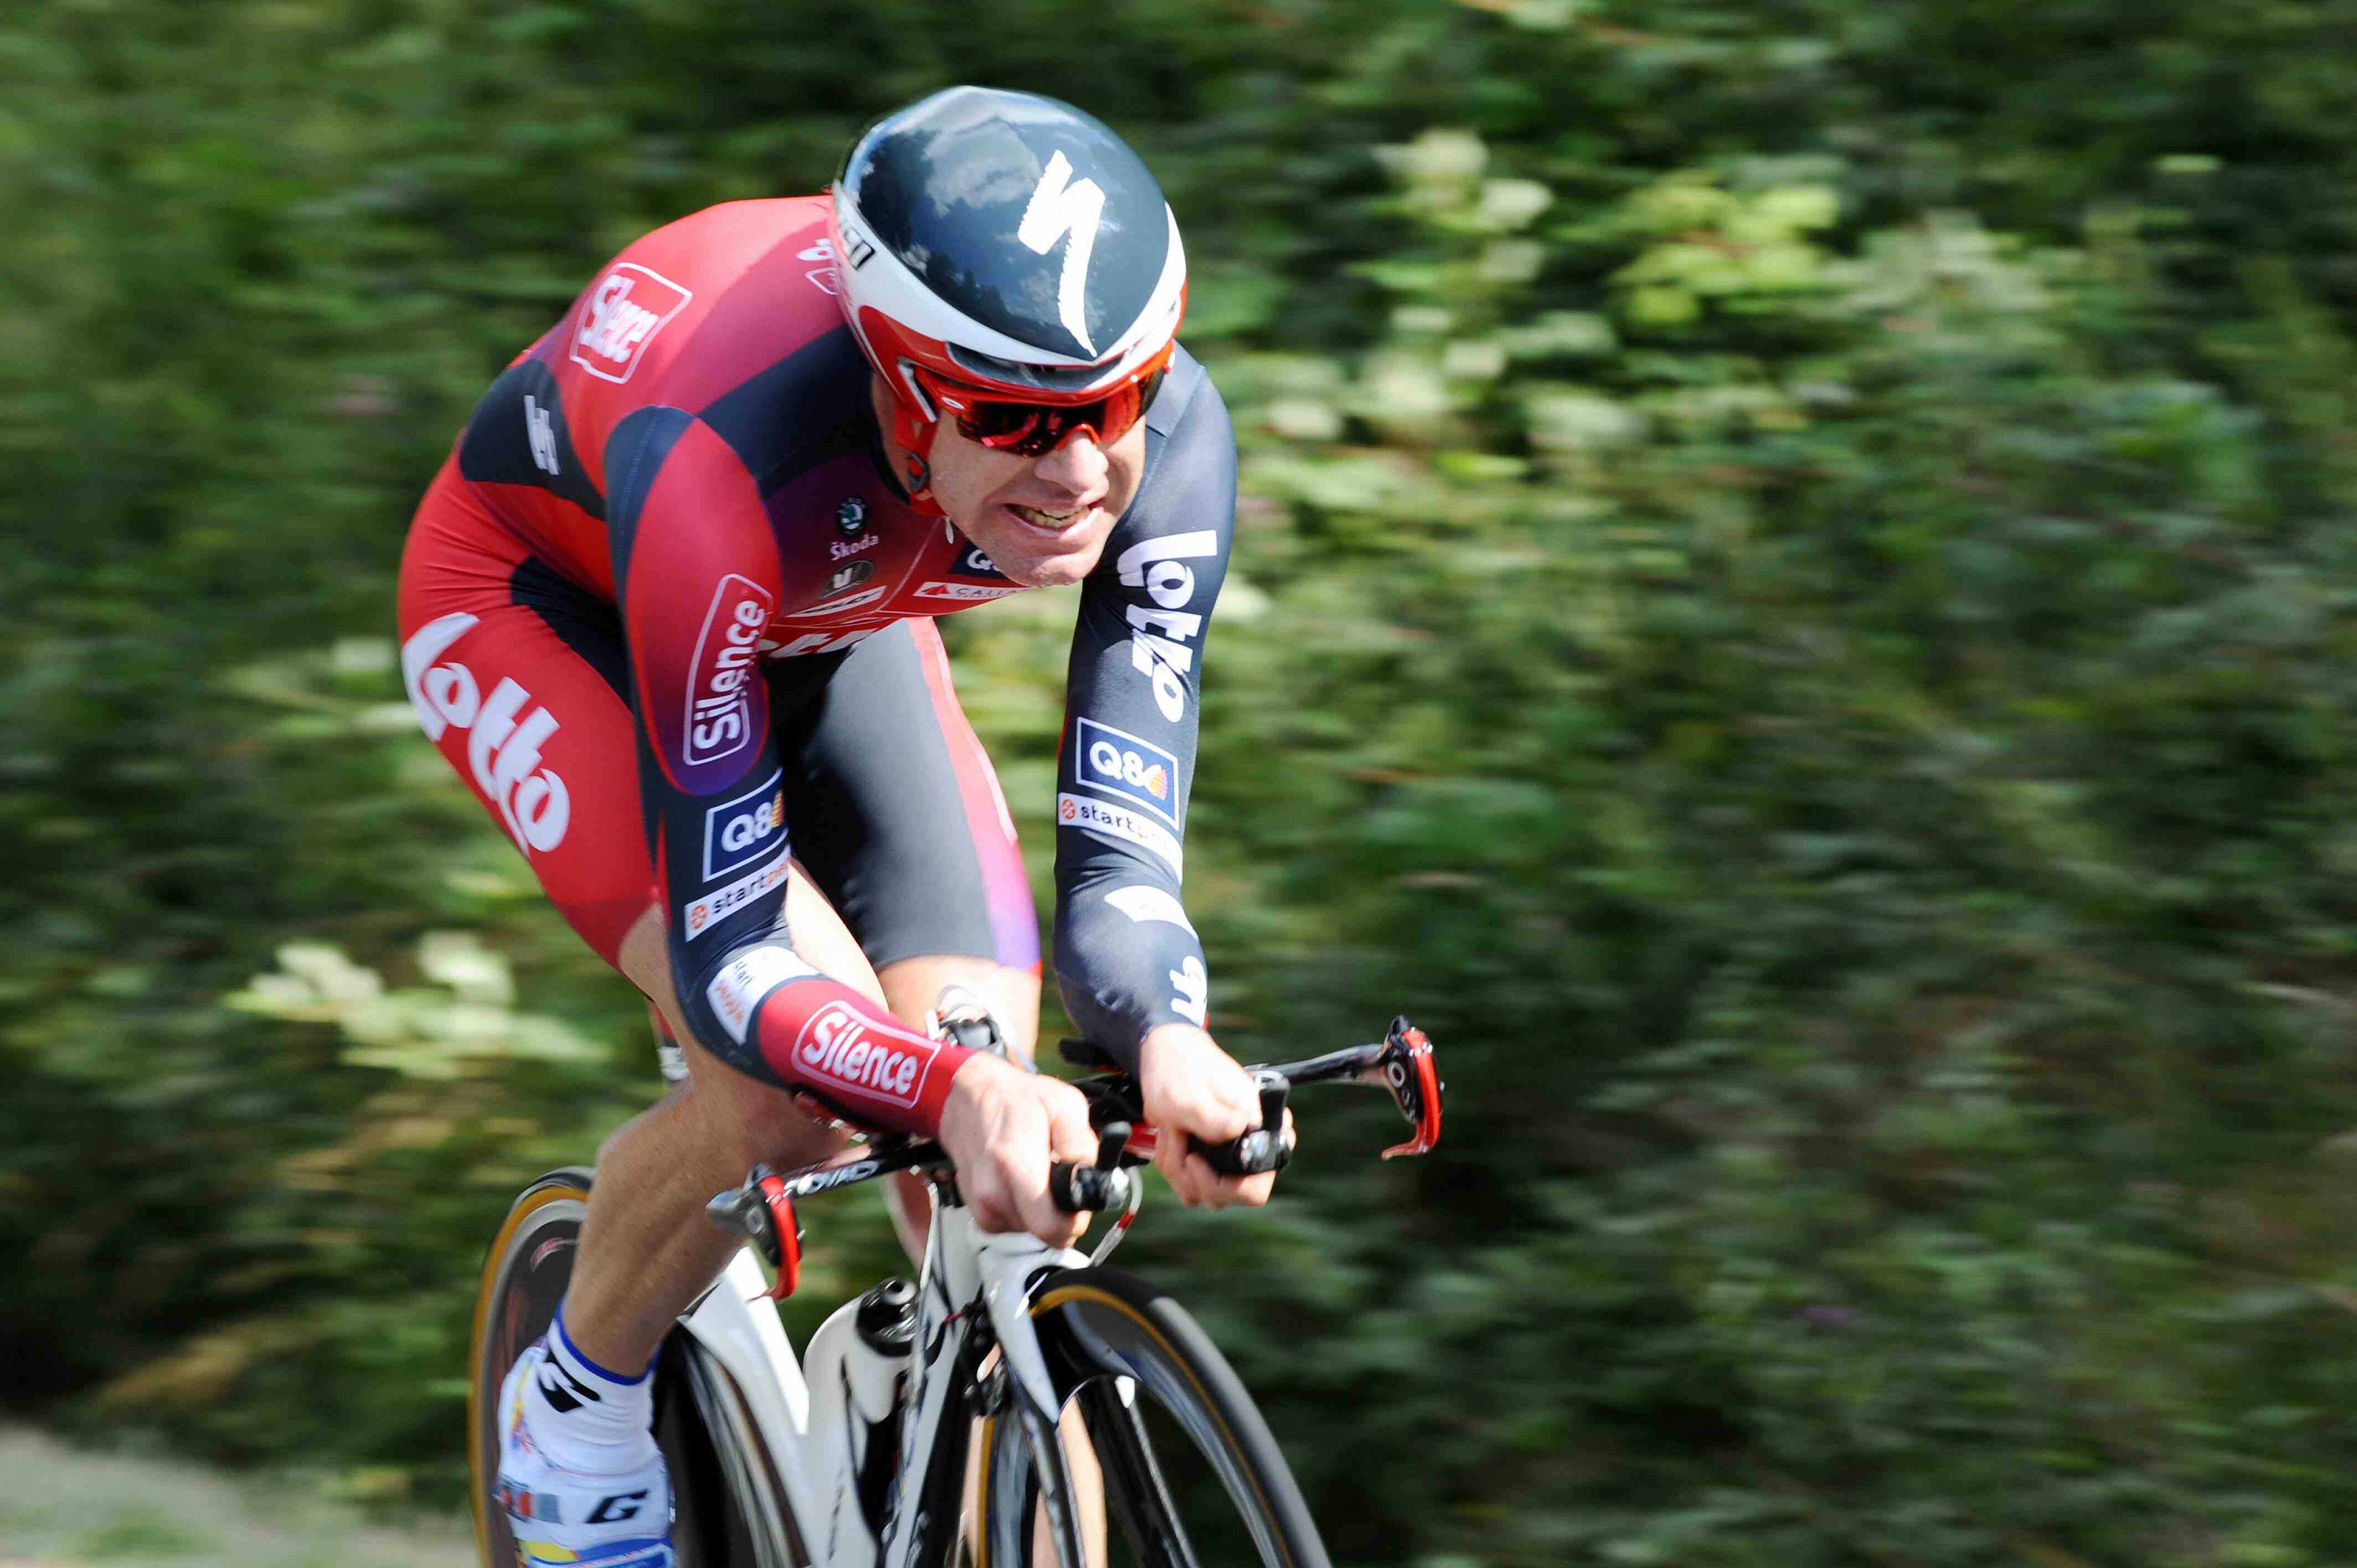 Cadel Evans is setting his sights squarely on winning the 2009 Tour de France.